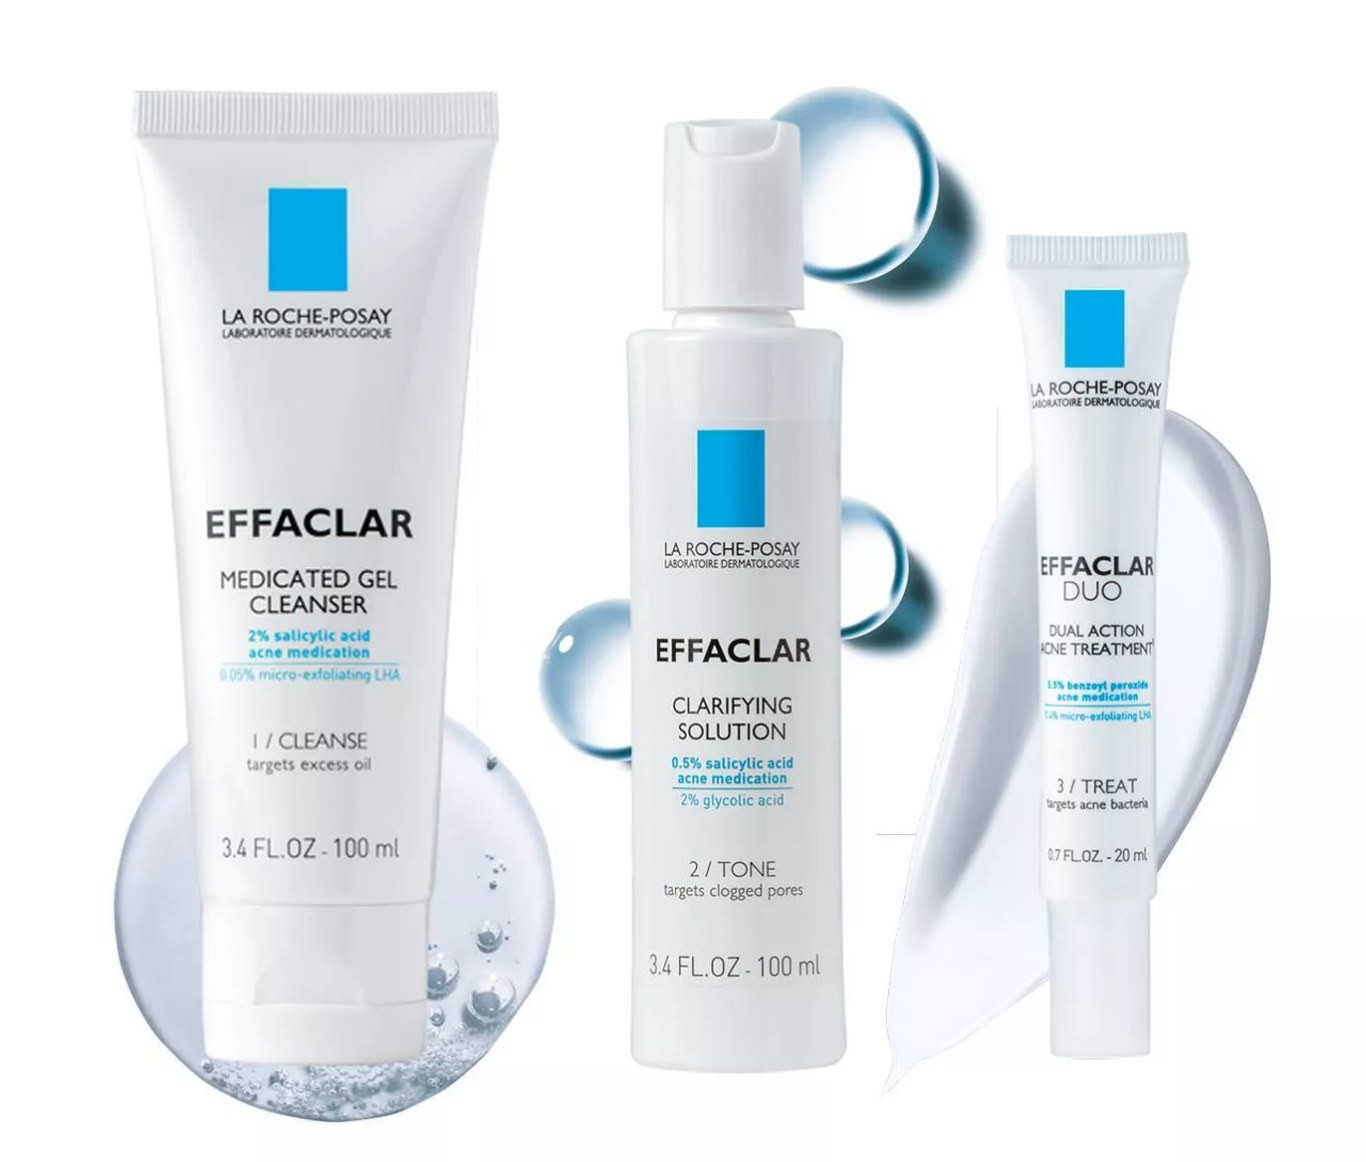 La Roche-Posay Effaclar Acne System products next to each other